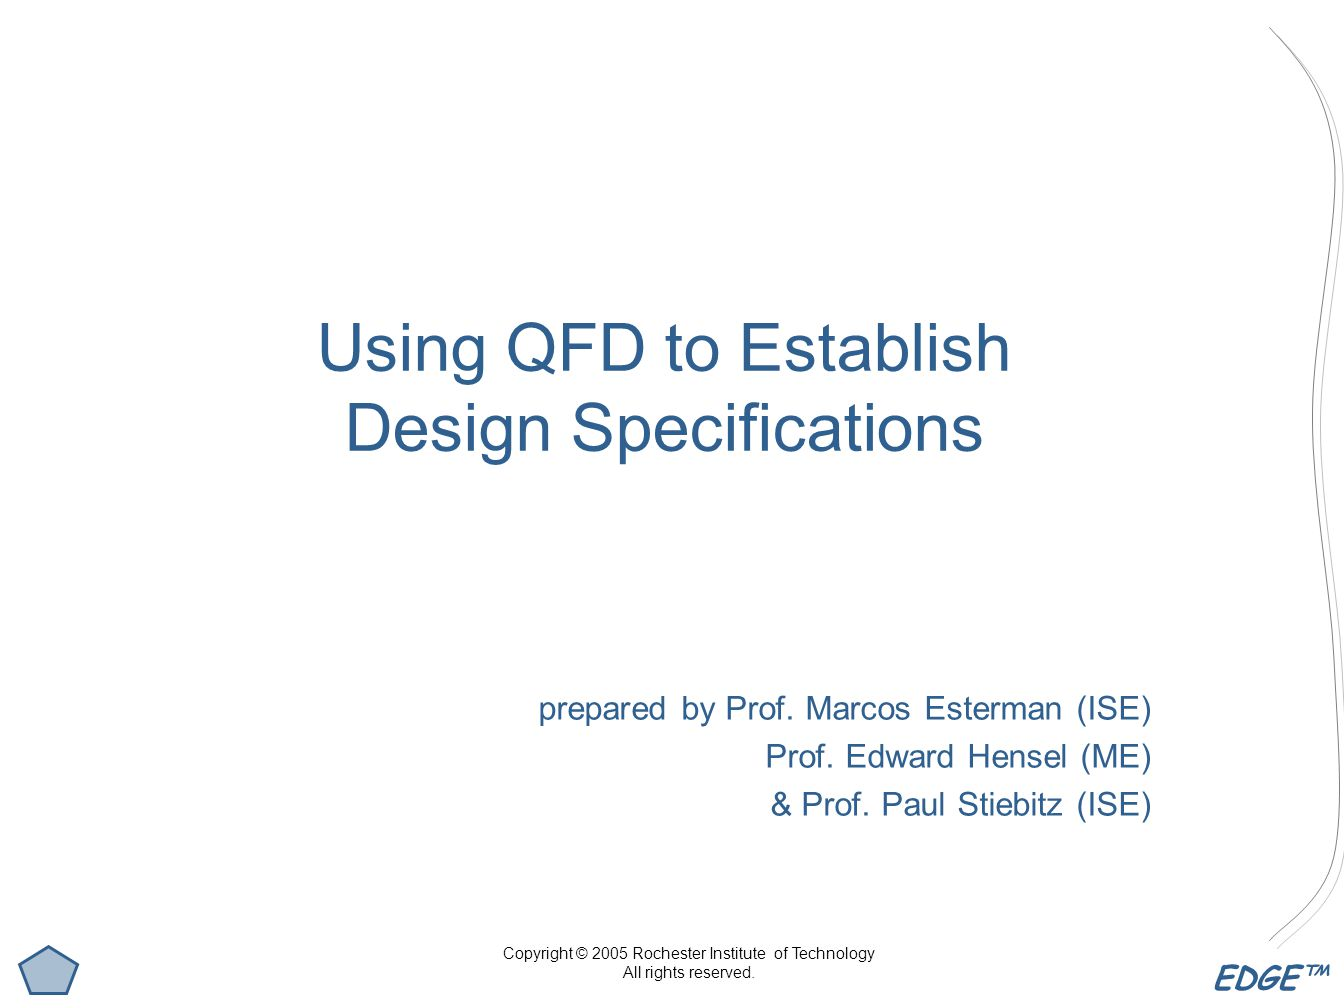 Using QFD to Establish Design Specifications